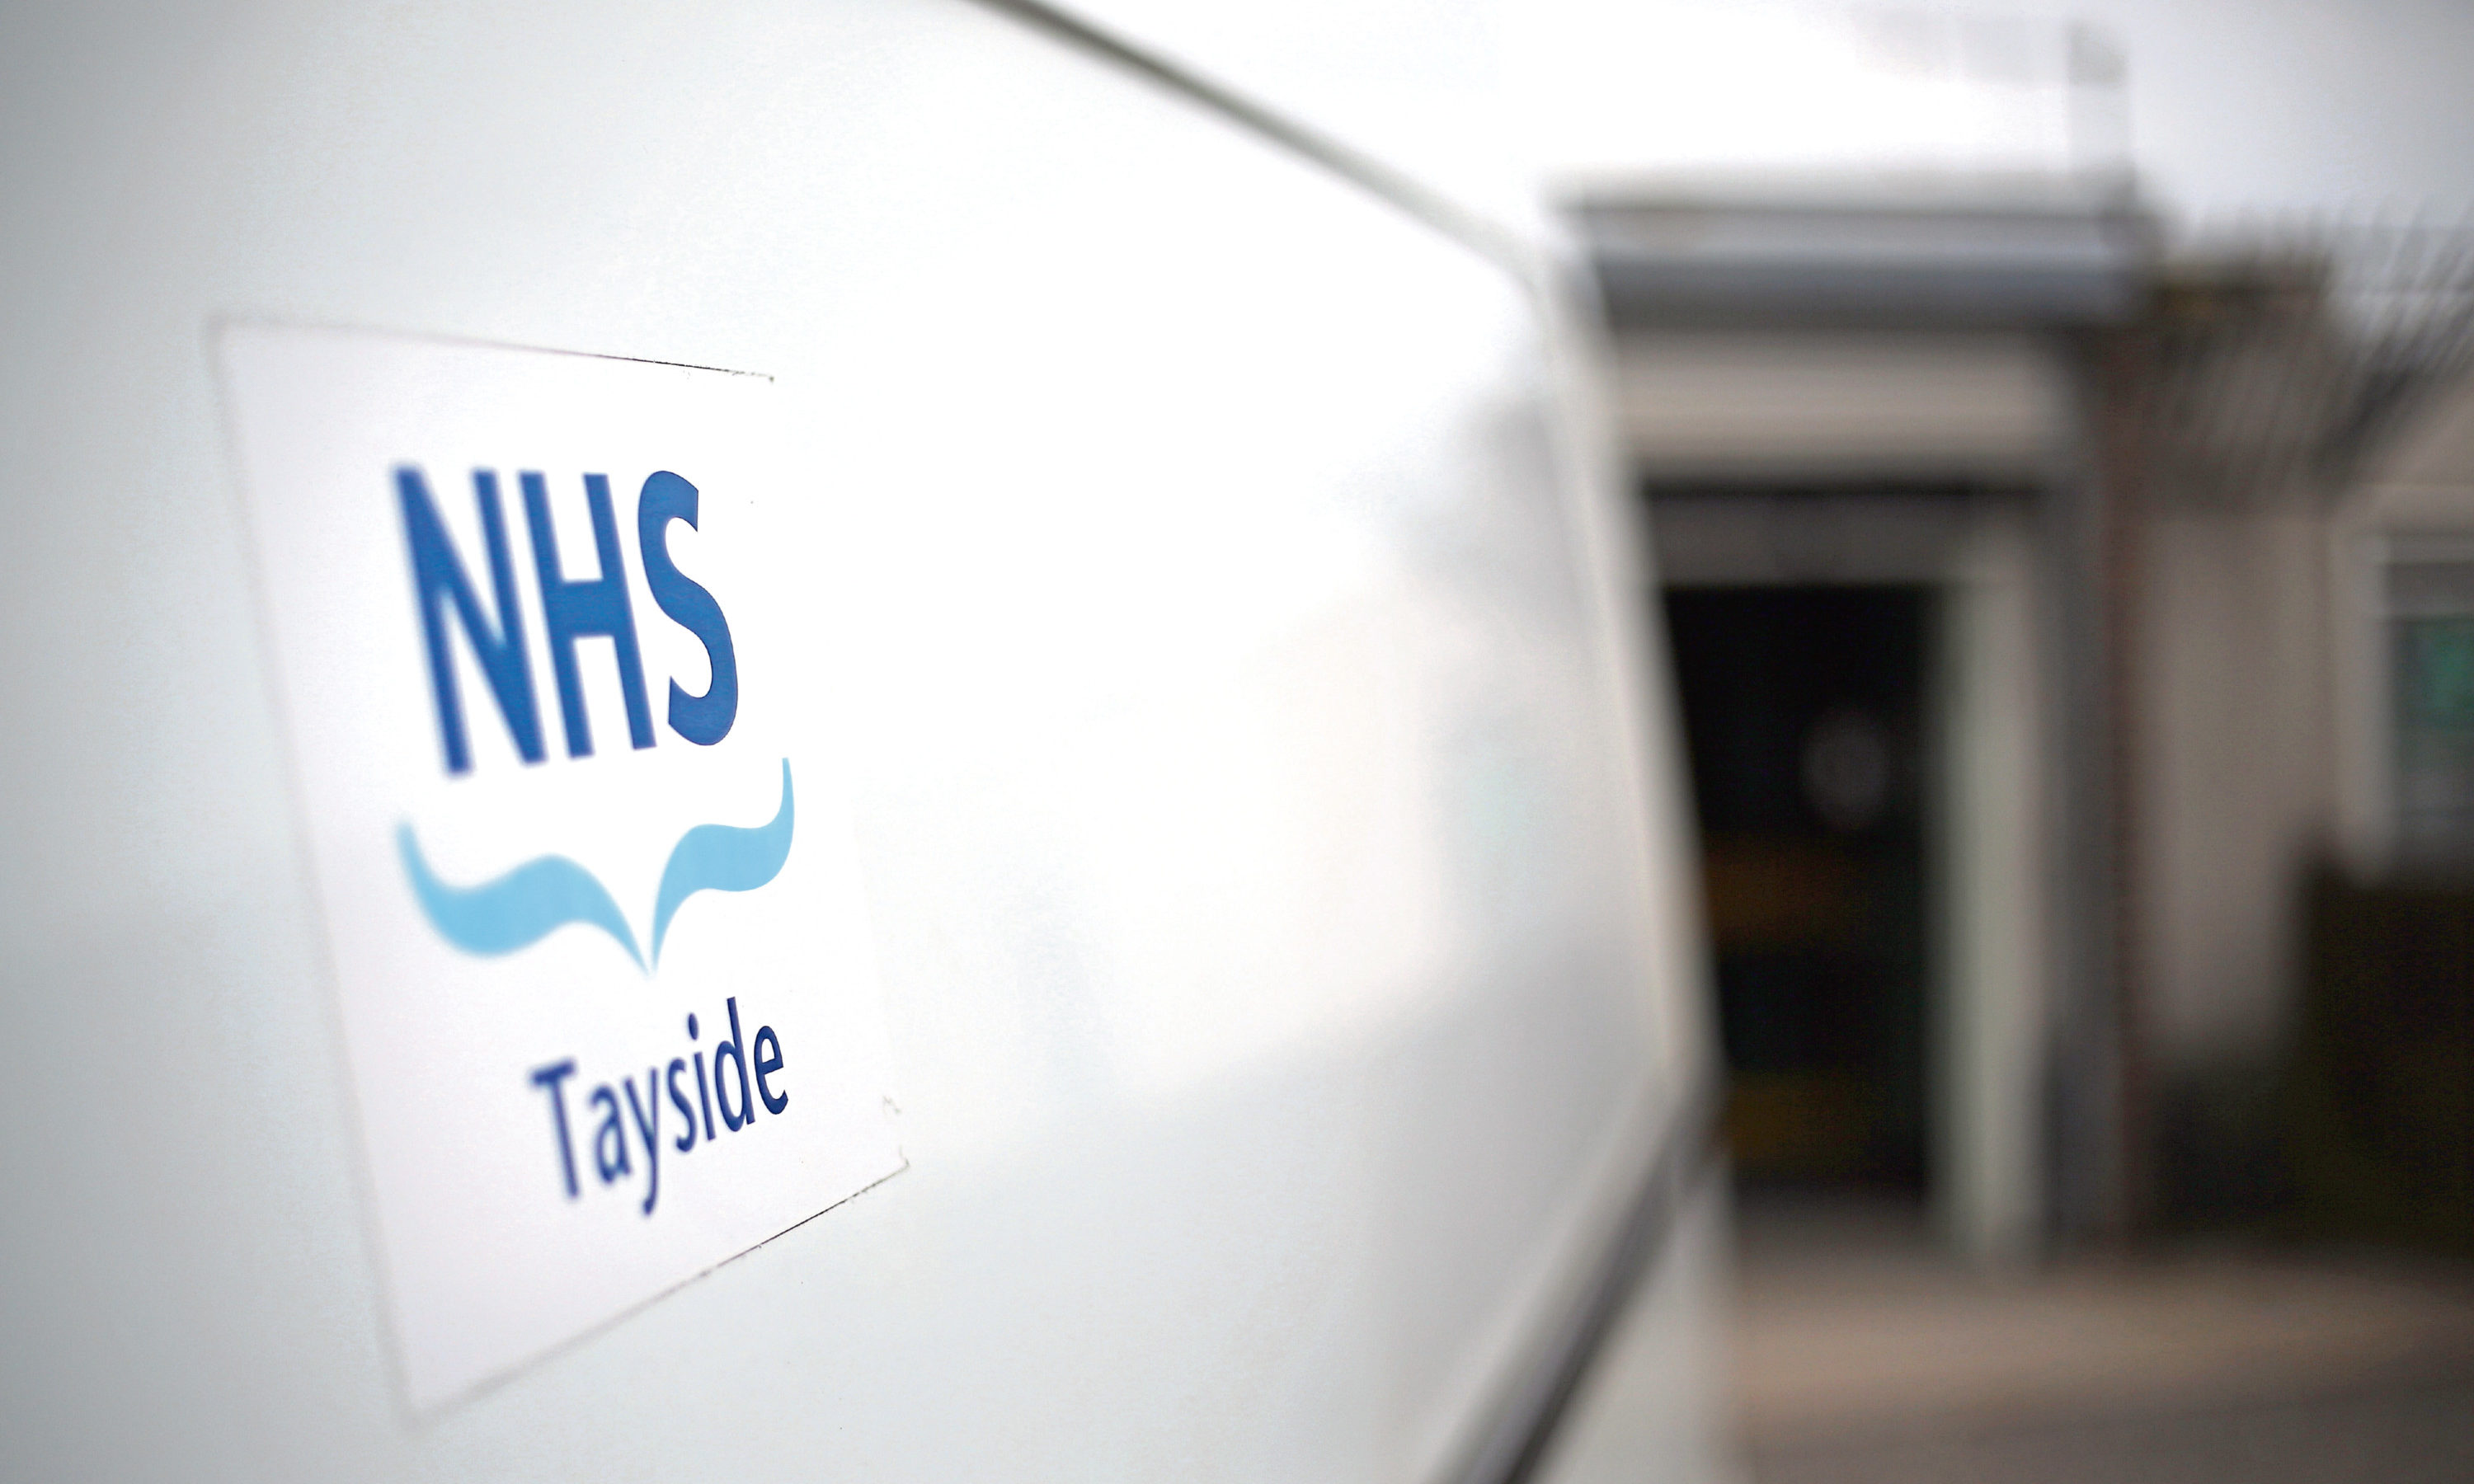 NHS Tayside confirmed it was reliant on temporary staff in its response to a patient's complaint.